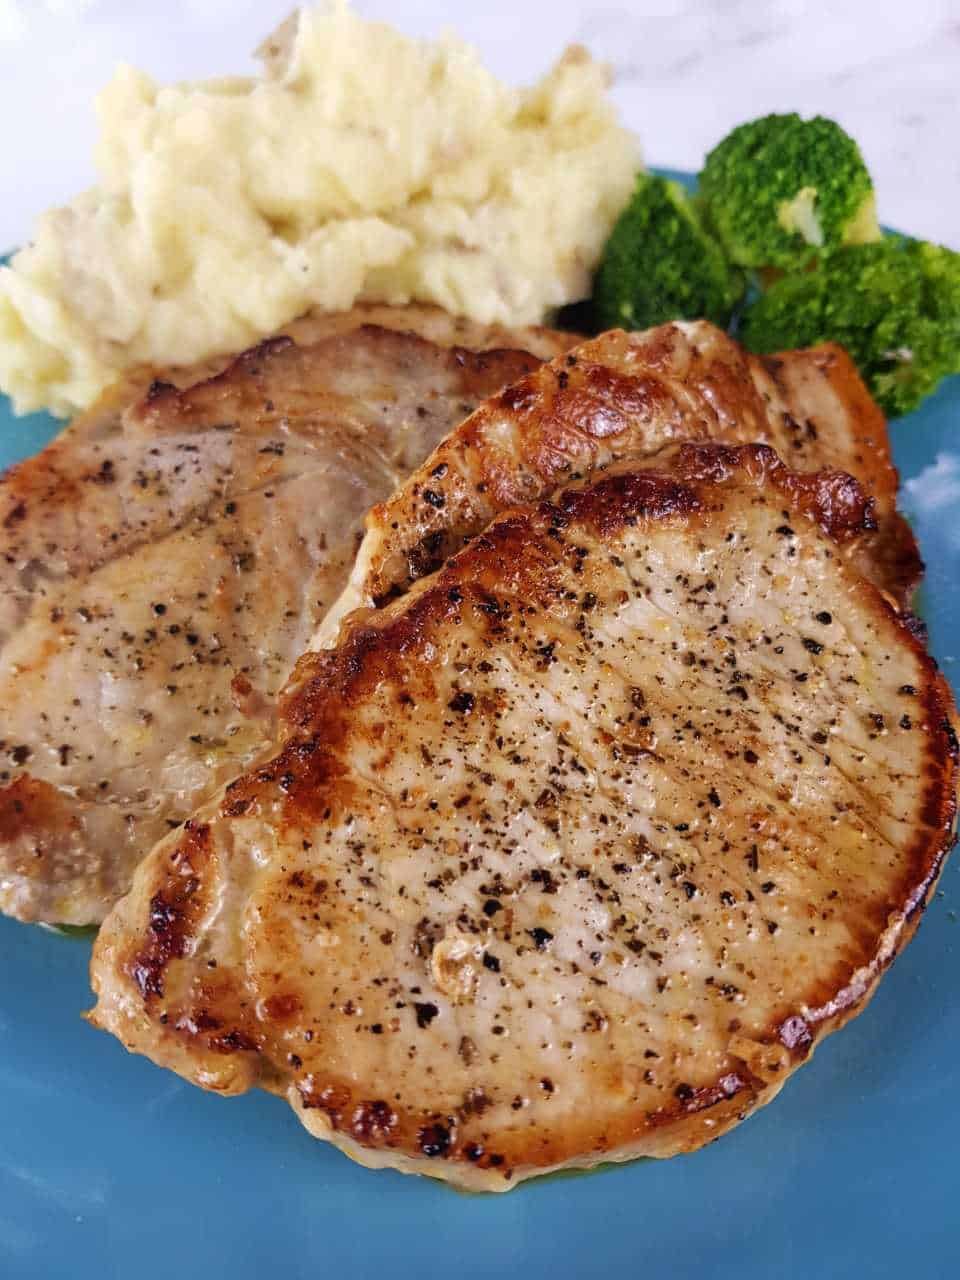 Pork steaks on a blue plate with mashed potatoes and broccoli.